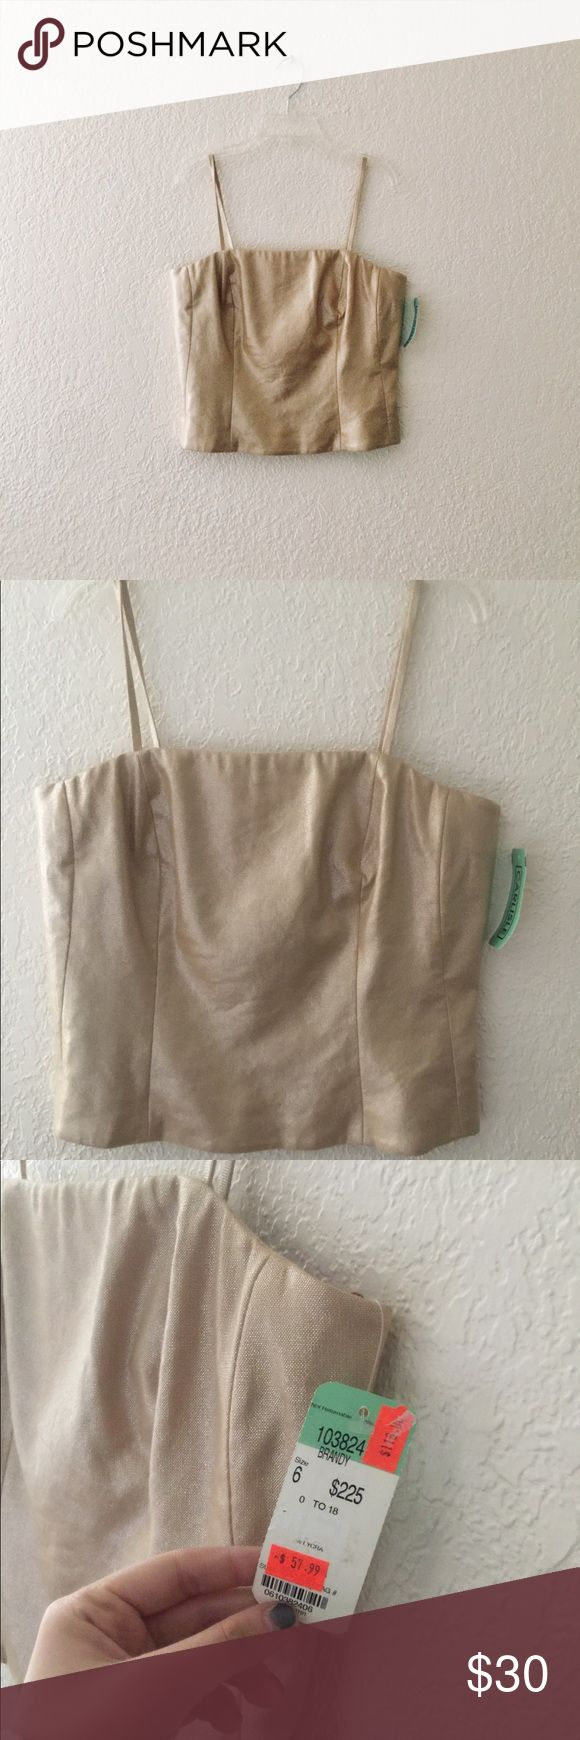 Gold Crop Top Perfect condition! Never worn - NWT! Zips up in back. Women's size 6. Tops Crop Tops